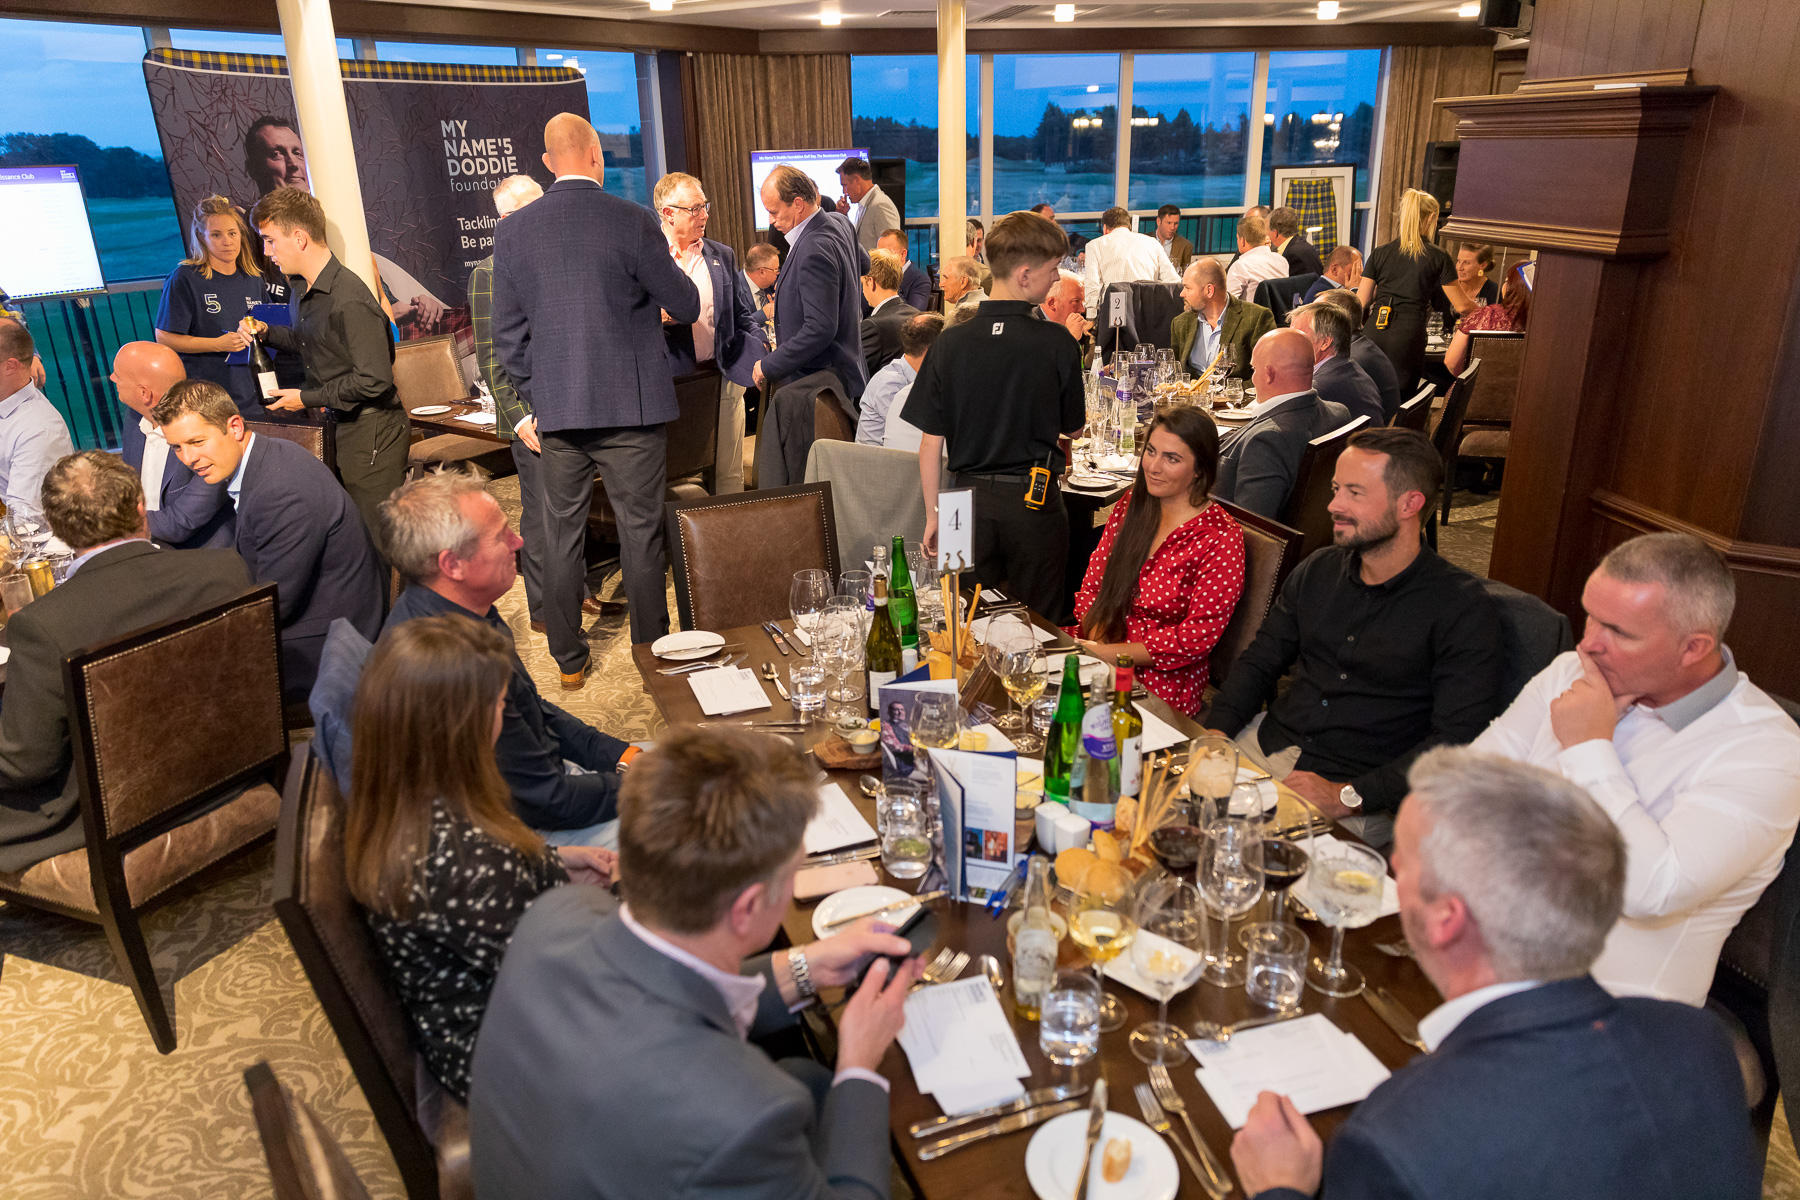 Doddie-golf-day-dinner-2.jpg